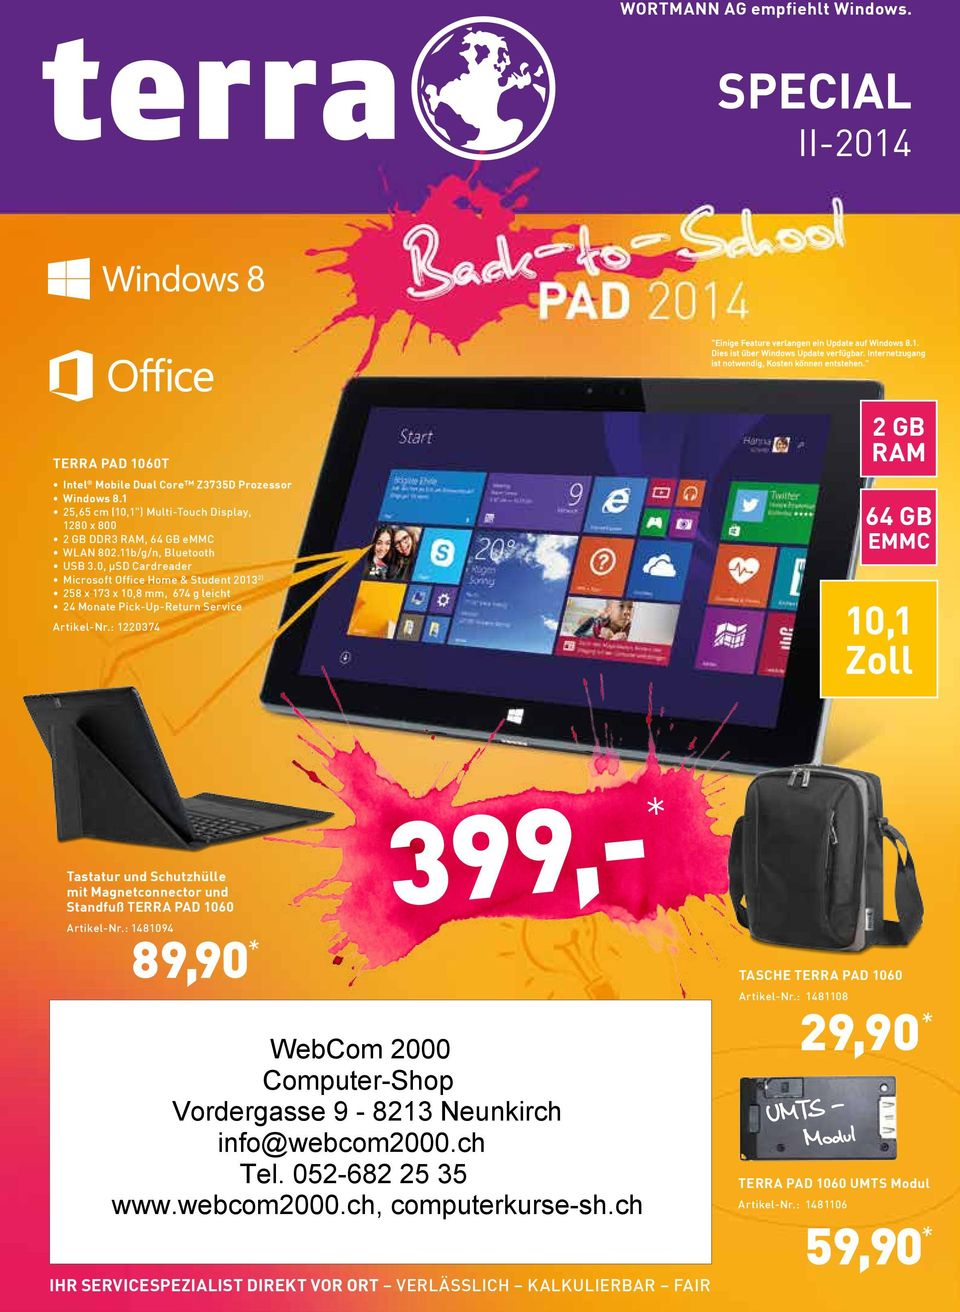 11b/g/n, Bluetooth, µsd Cardreader Microsoft Office Home & Student 2013 2) 258 x 173 x 10,8 mm, 674 g leicht Artikel-Nr.